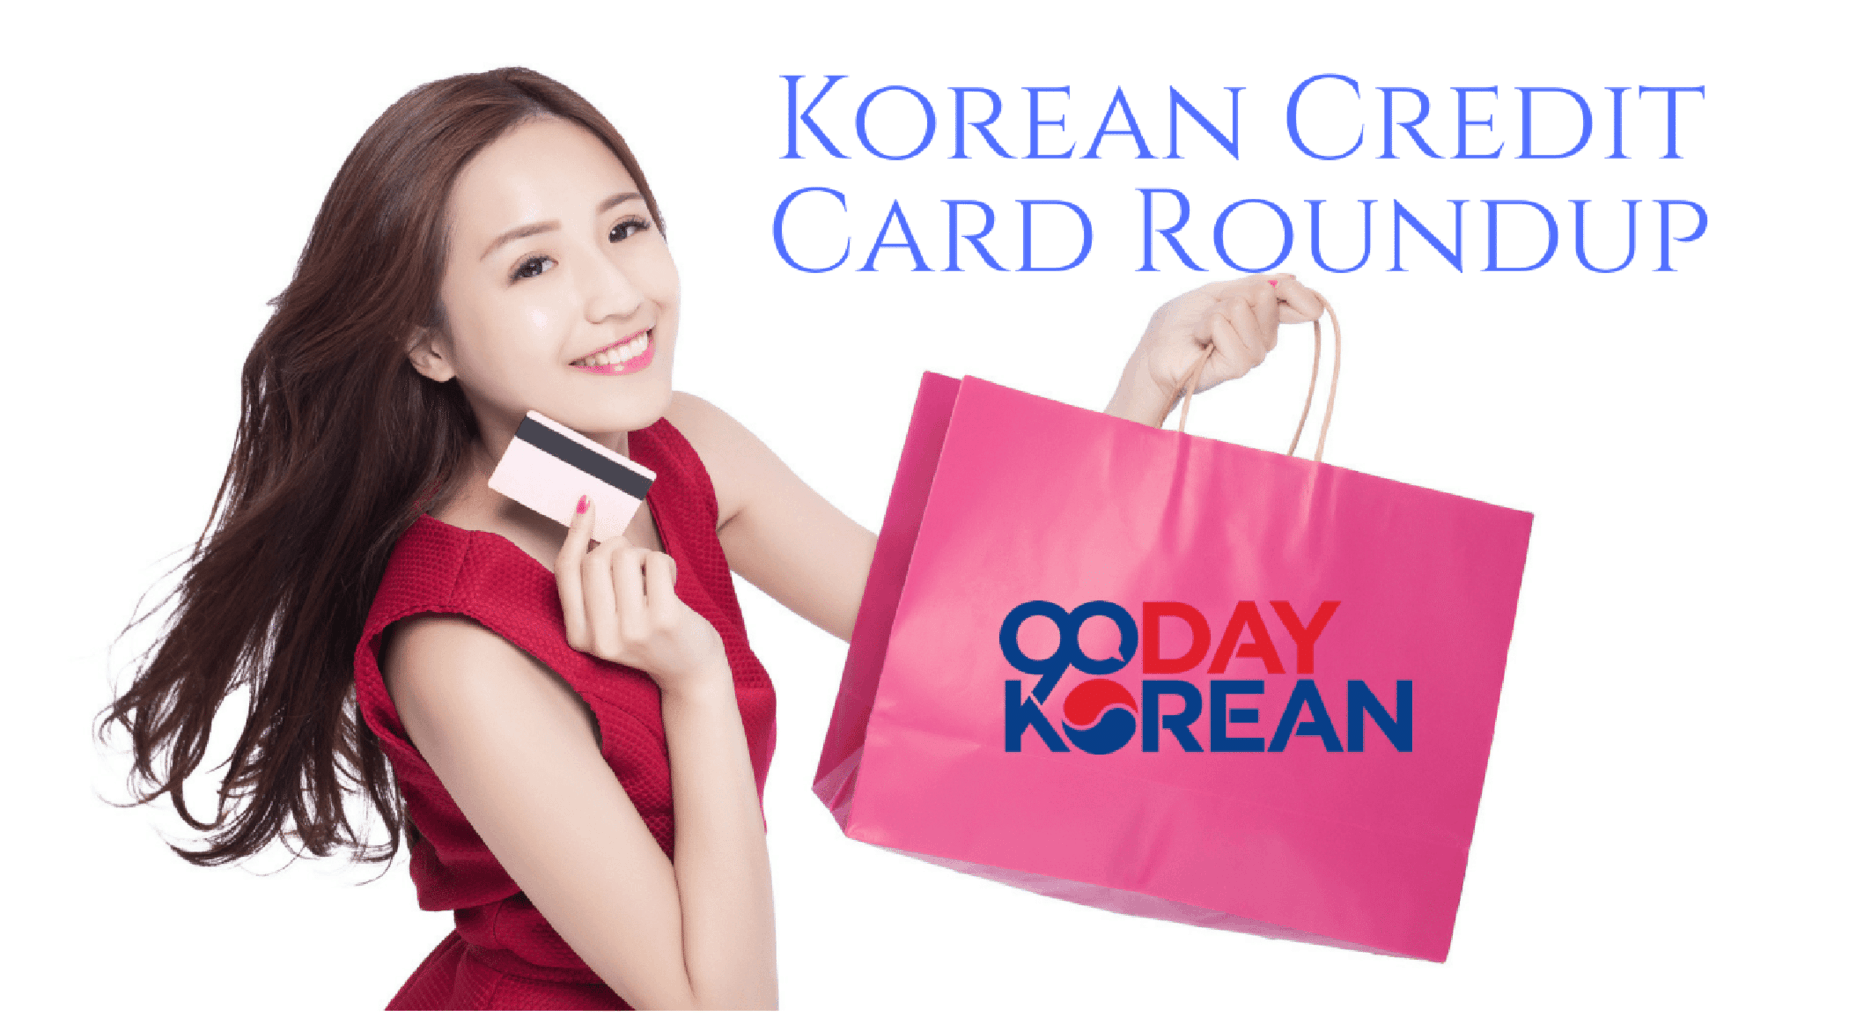 Korean Credit Card Roundup